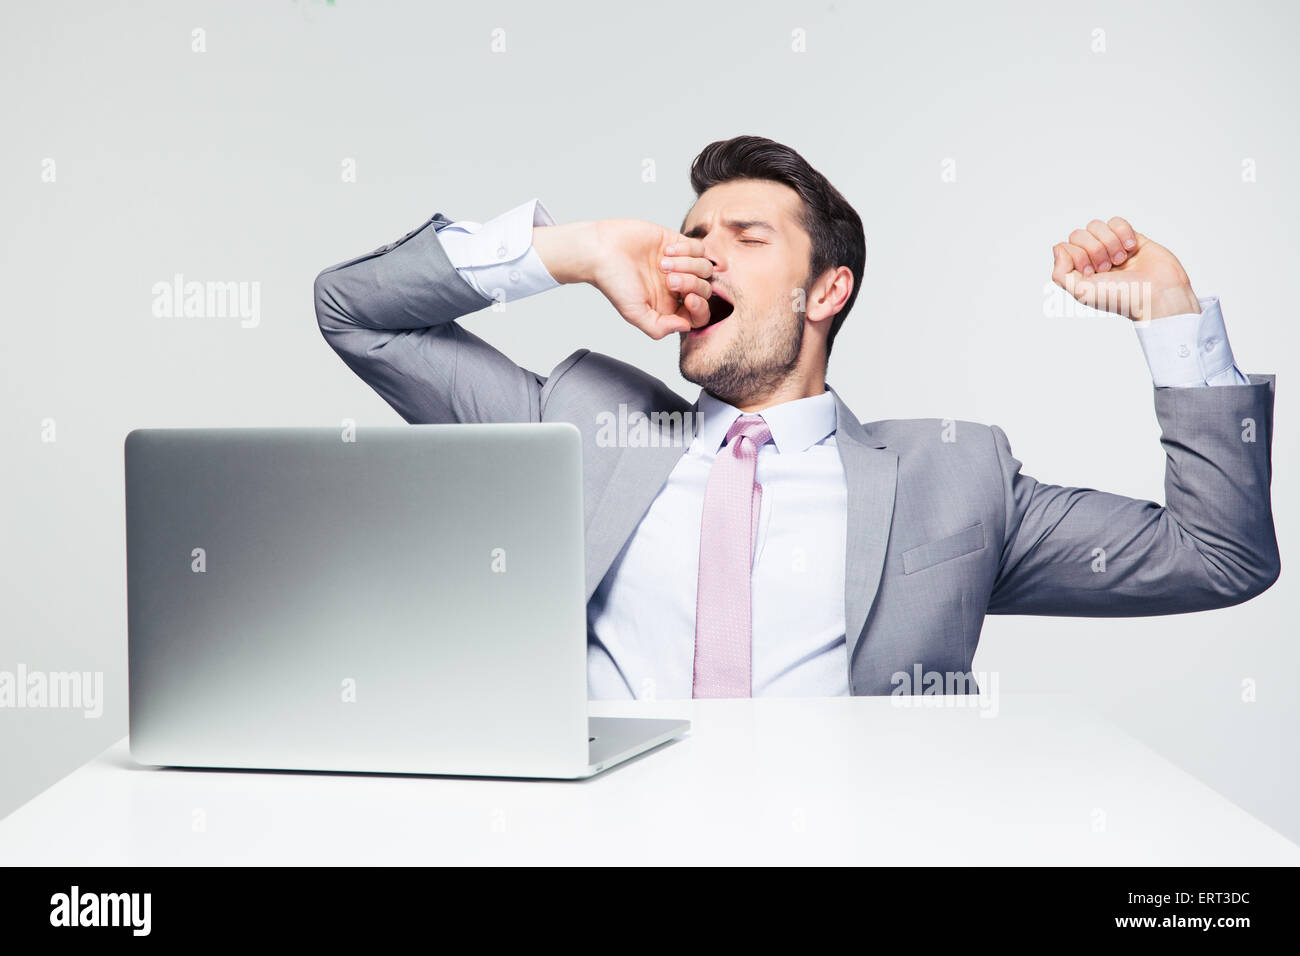 Businessman sitting at the table with laptop and yawning over gray background - Stock Image